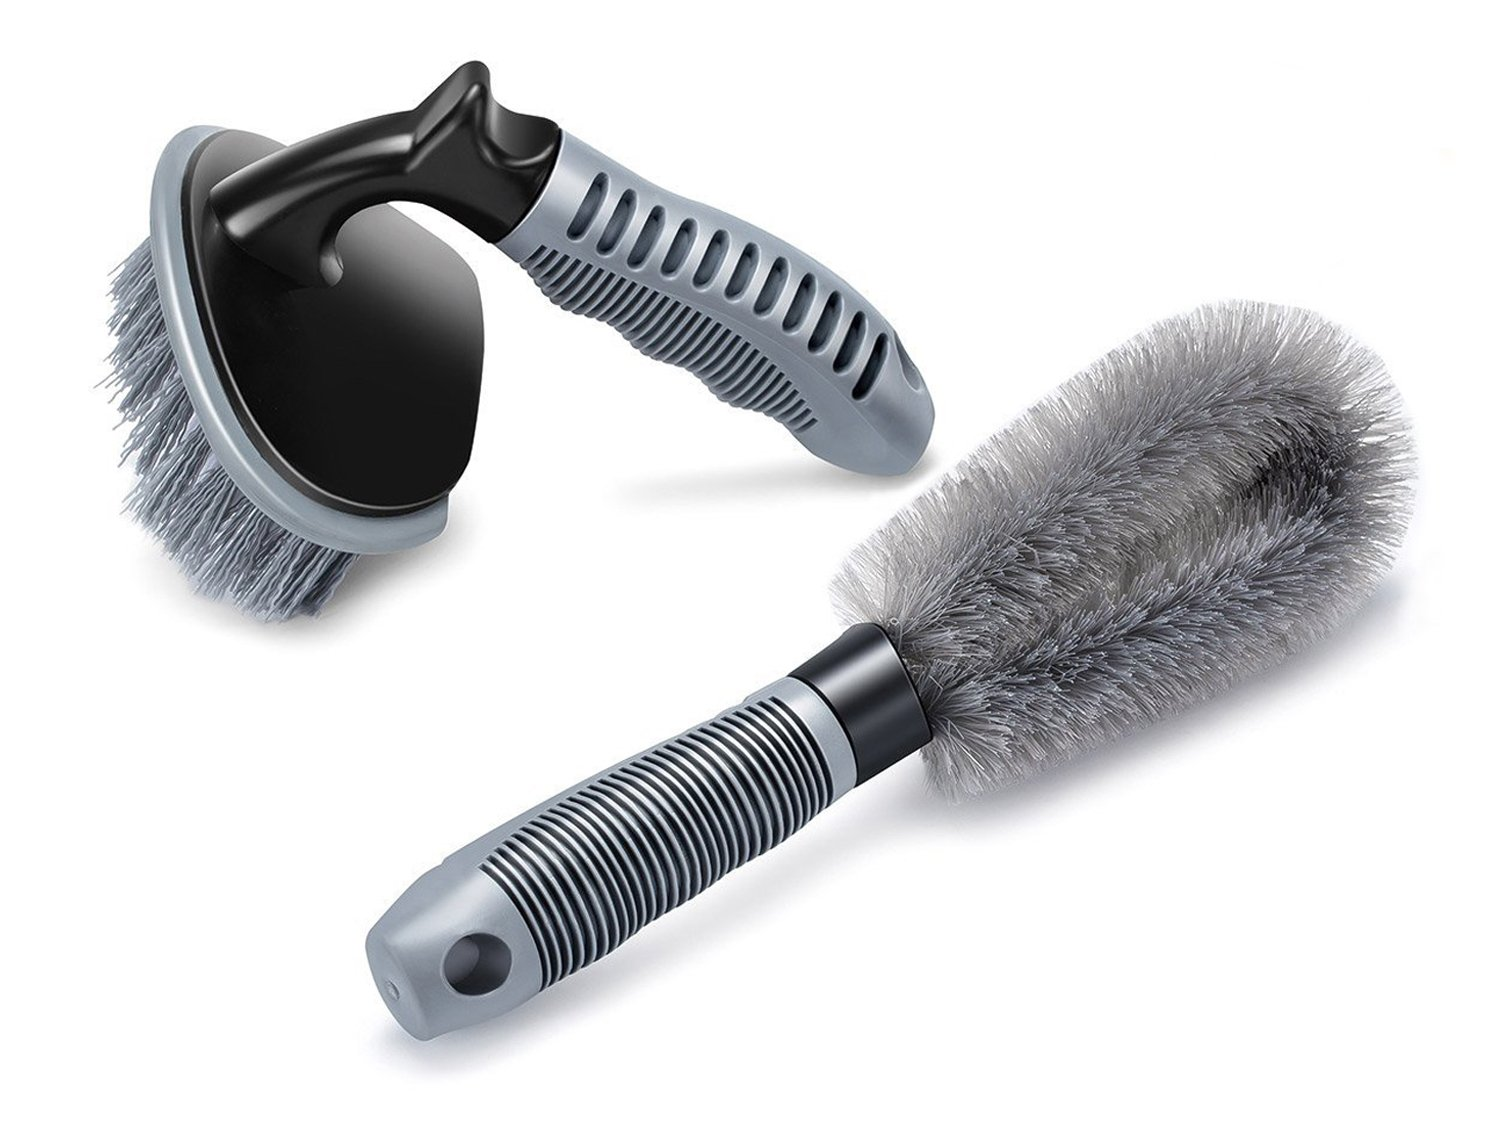 2-Pcs-Steel-and-Alloy-Wheel-Cleaning-Brush-Rim-Cleaner-for-Your-Car-Motorcycle-or-Bicycle-Tire-Brush-Washing-Tool